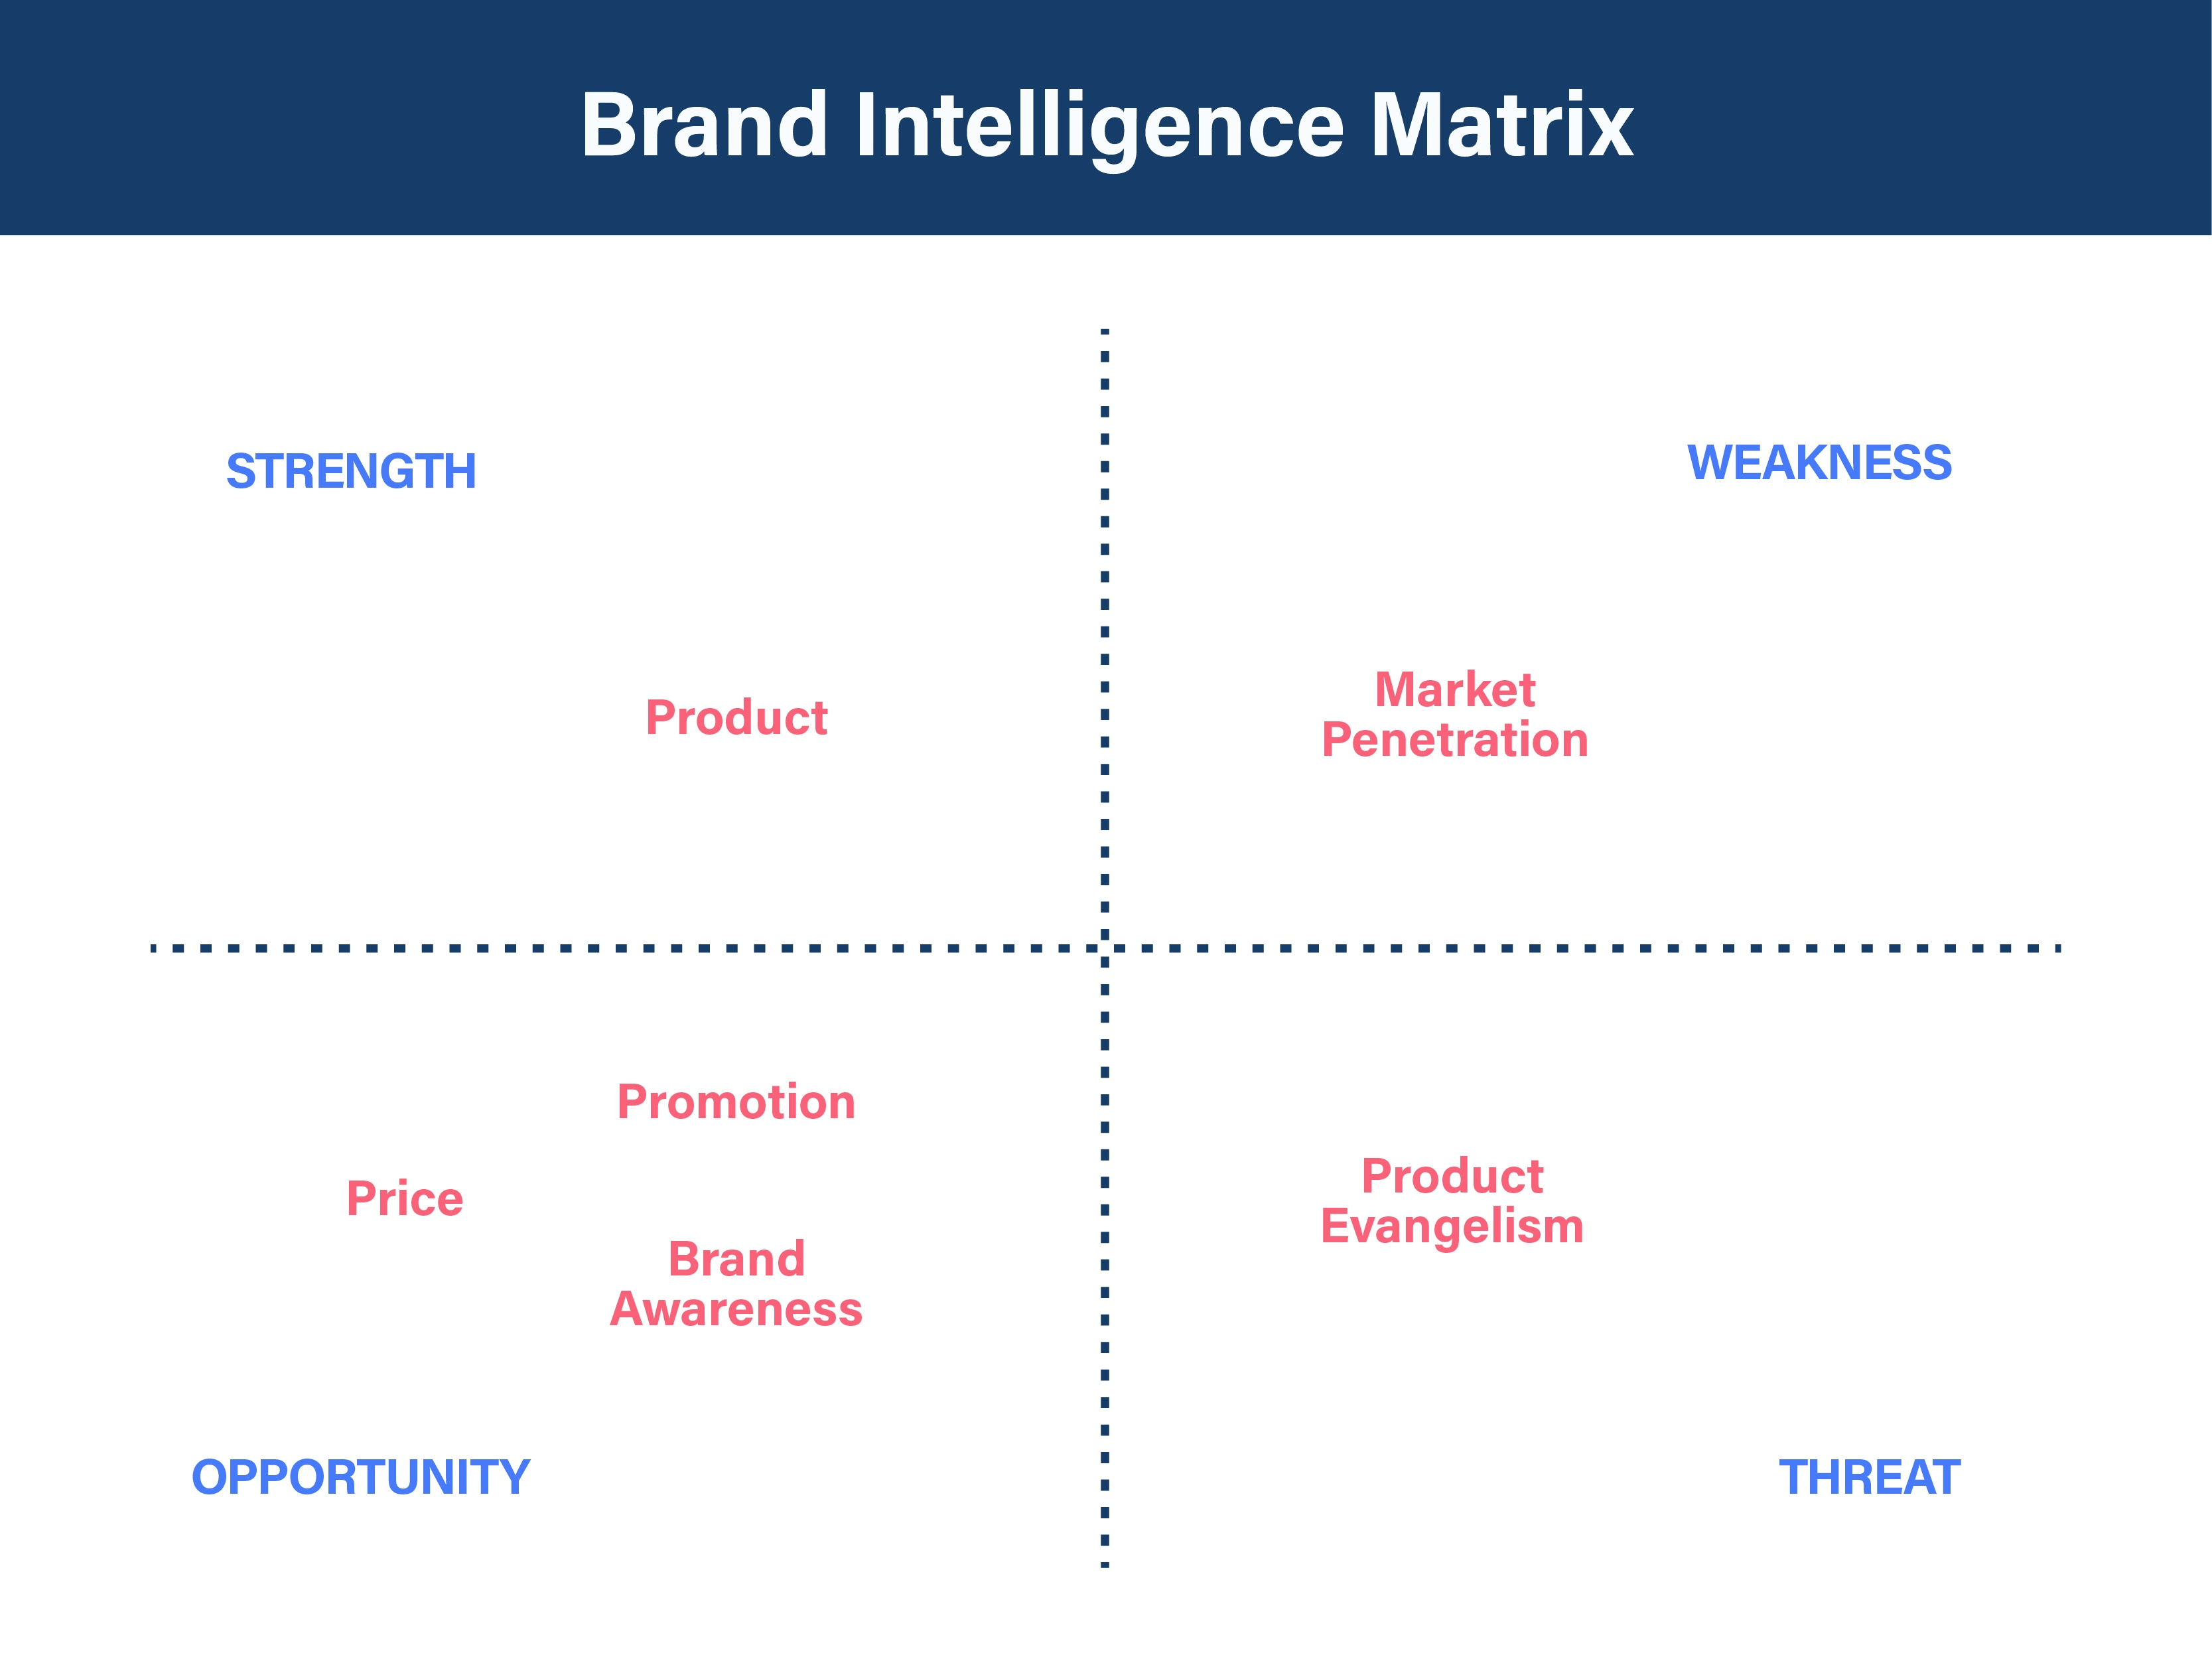 Brand Intelligence Matrix 04 (1).jpg